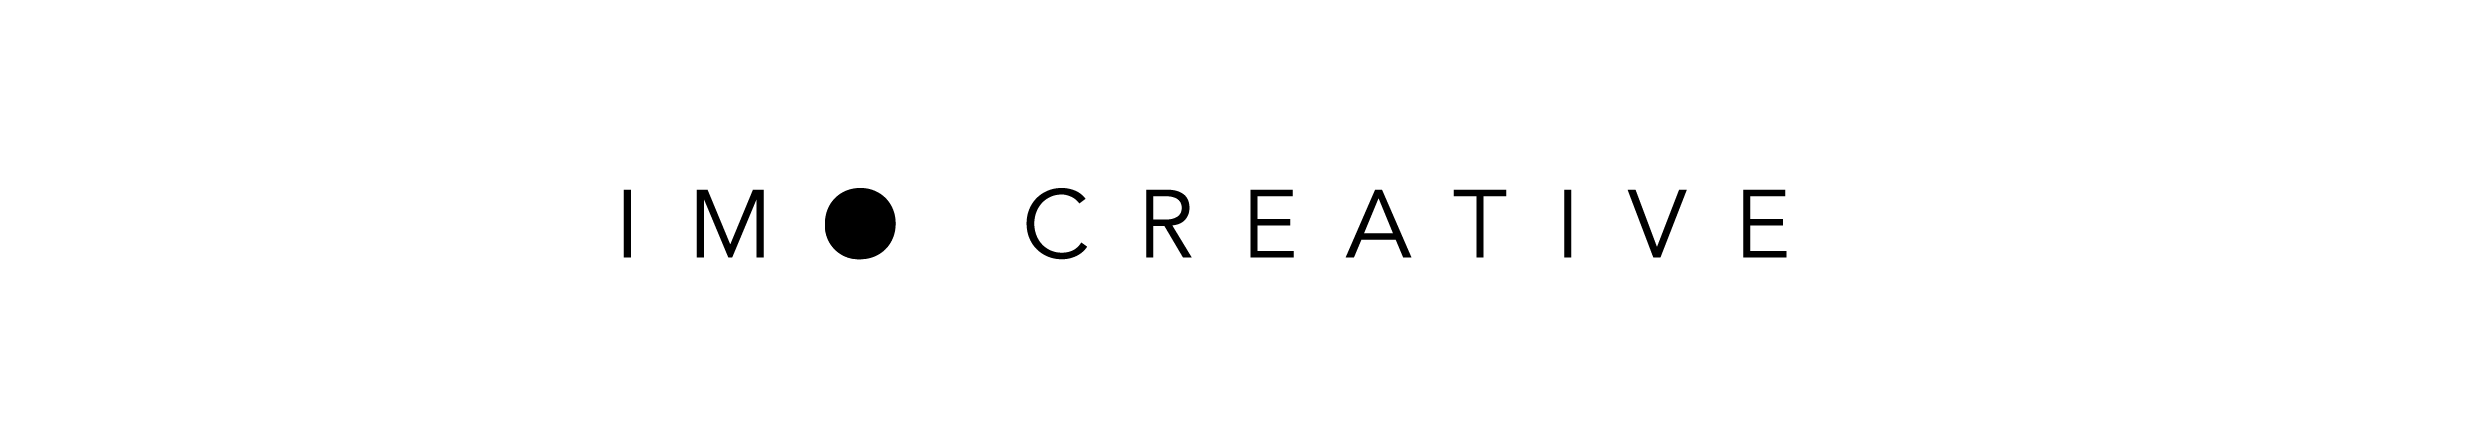 imo creative brand development-07.png